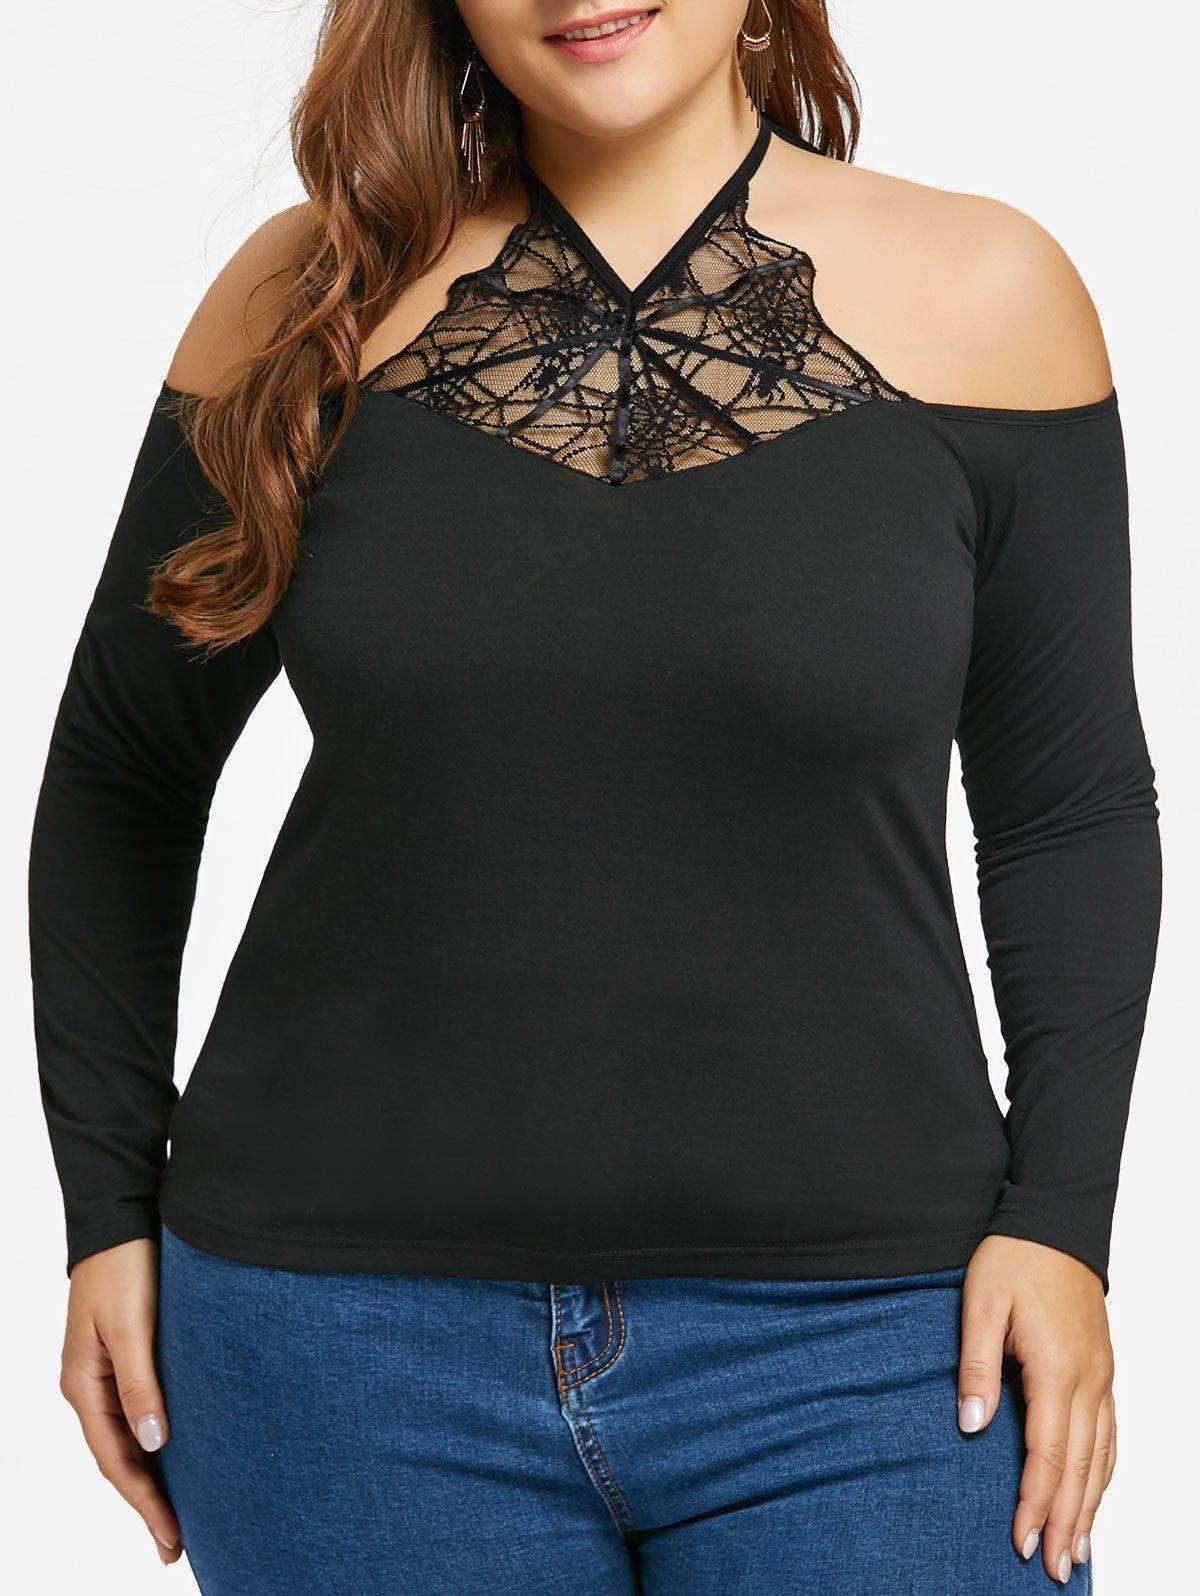 Plus Size Halter Spider Net Lace Panel Top - BLACK 4XL